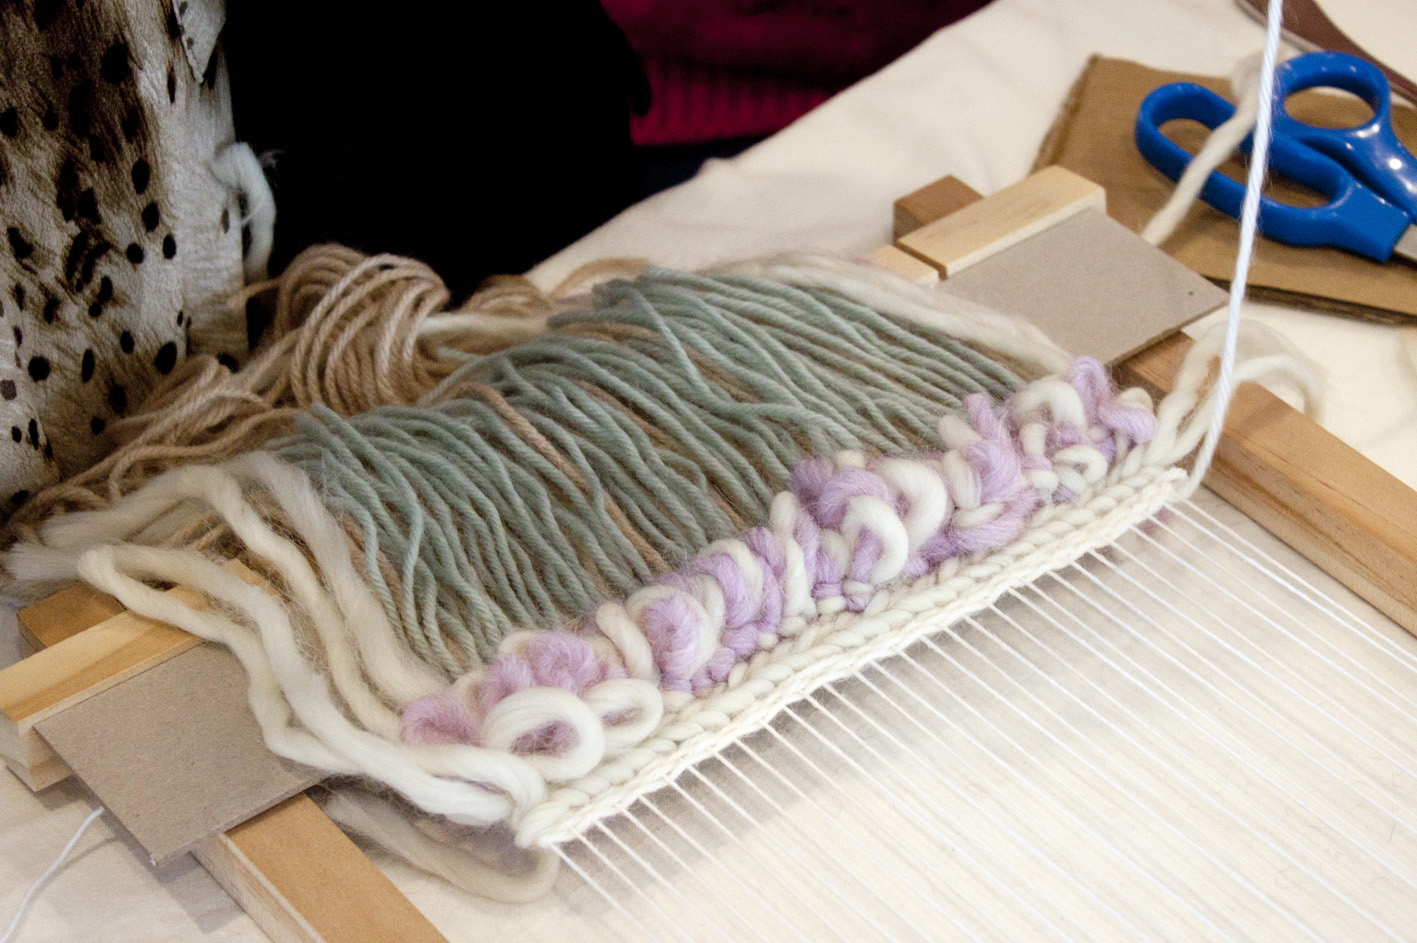 Loom Weaving Workshop - The Corner Store Gallery, photograph by Madeline Young